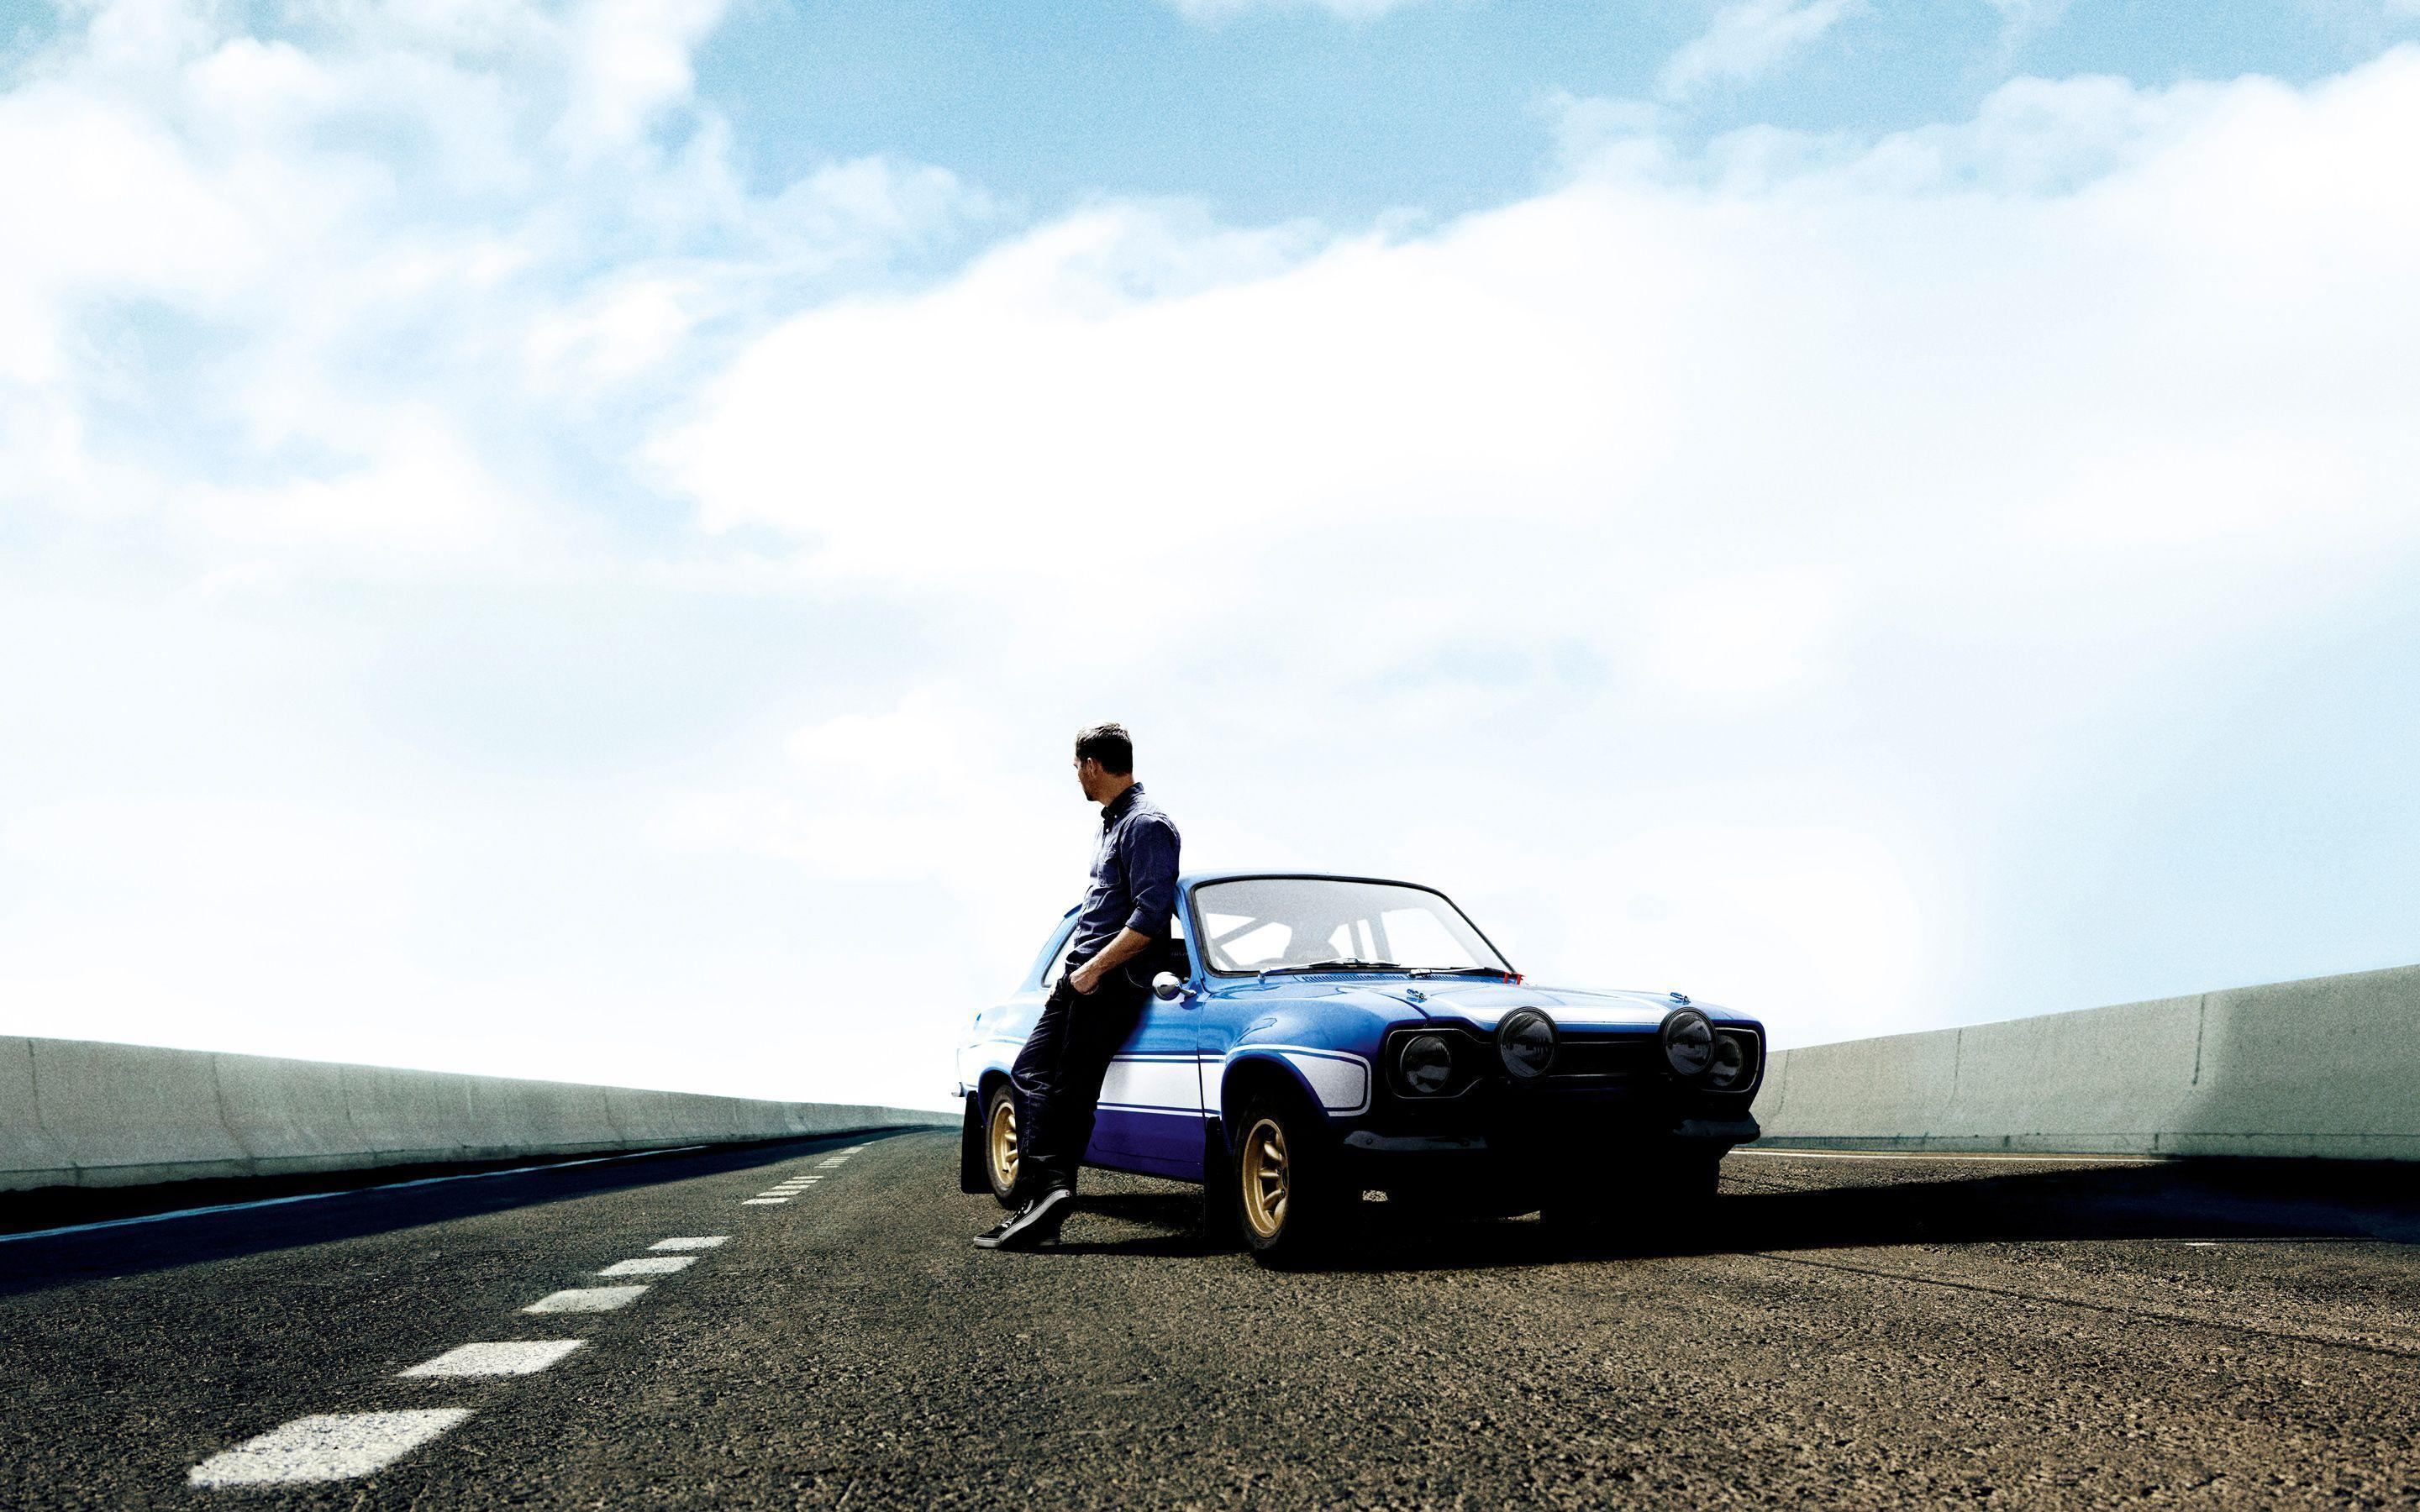 Fast And Furious 7 Wallpaper: Fast And Furious 7 Wallpapers